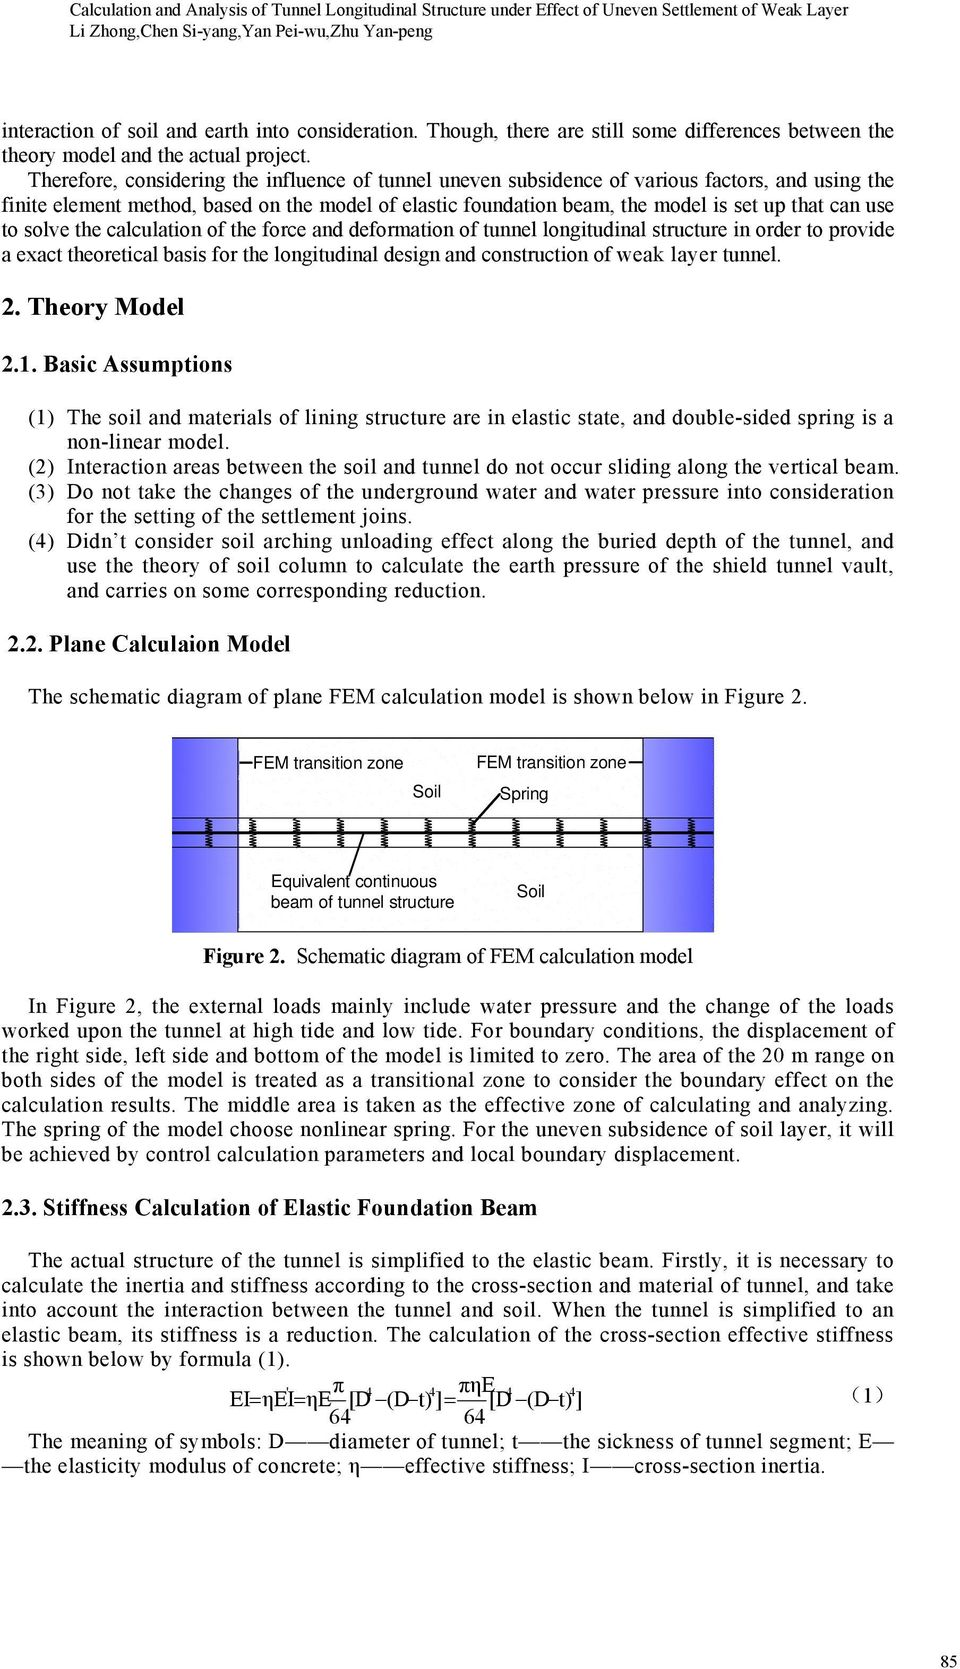 Calculation and Analysis of Tunnel Longitudinal Structure